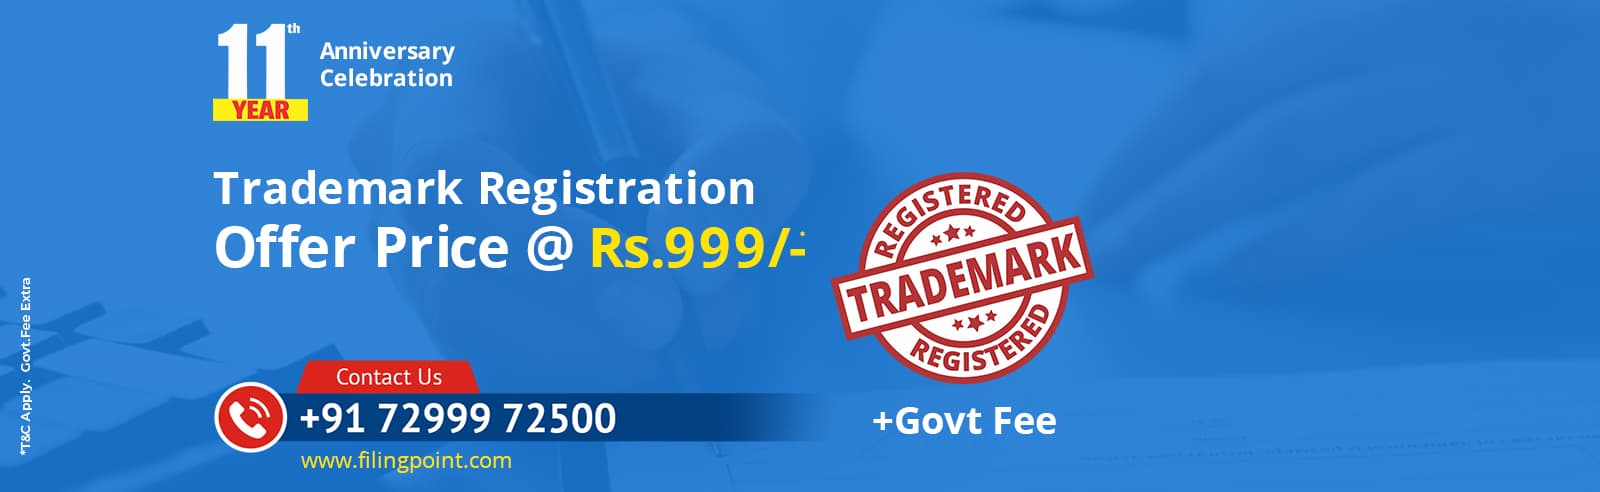 Trademark-Registration-Renewal-Consultants-Chennai-India-online-coimbatore-tn